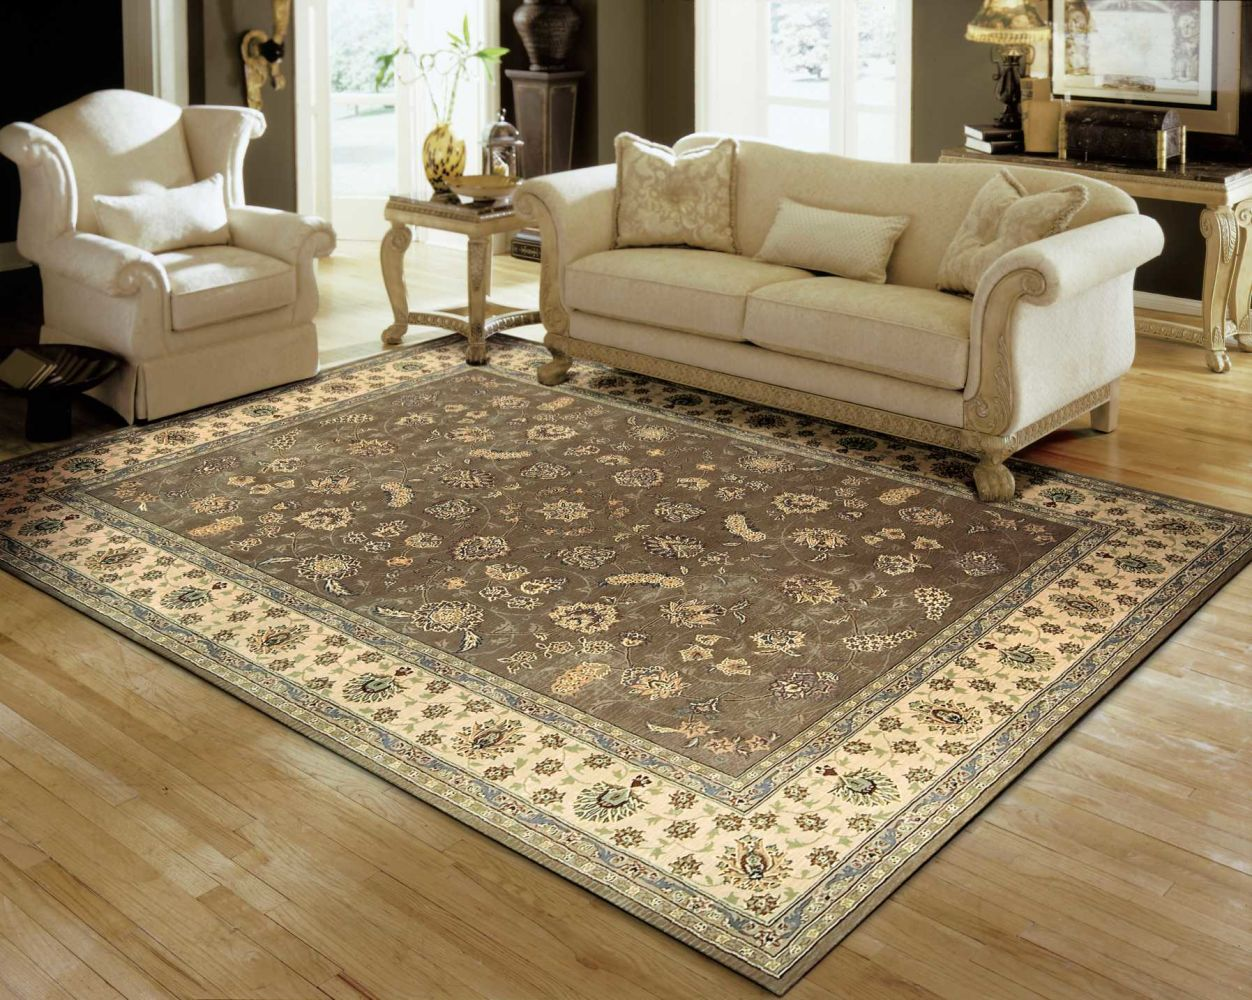 Nourison 2000 Traditional, Olive 12'0″ x 15'0″ 2003LV12X15